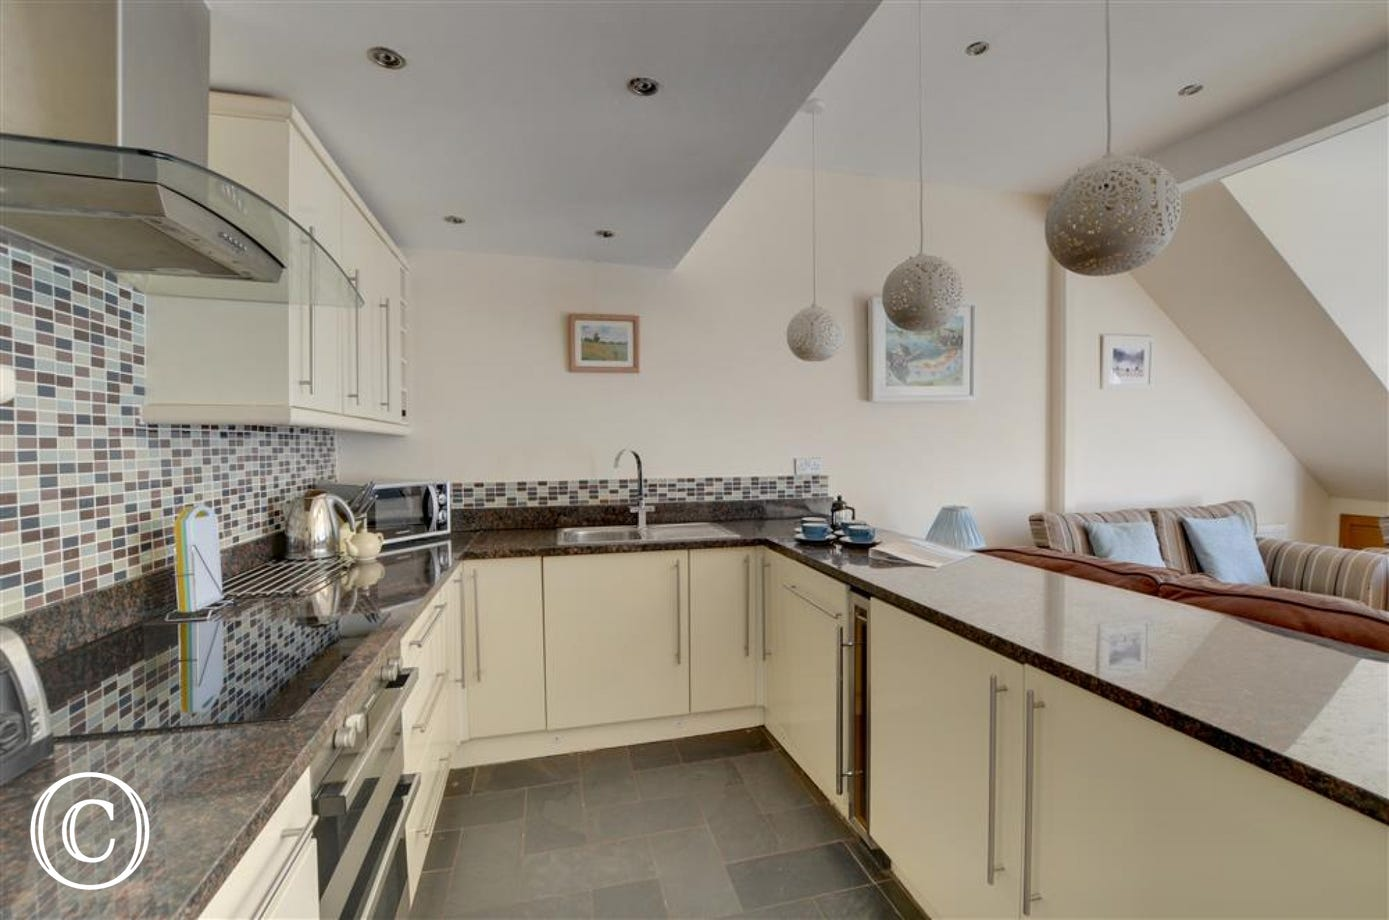 Attractive, modern and well equipped kitchen